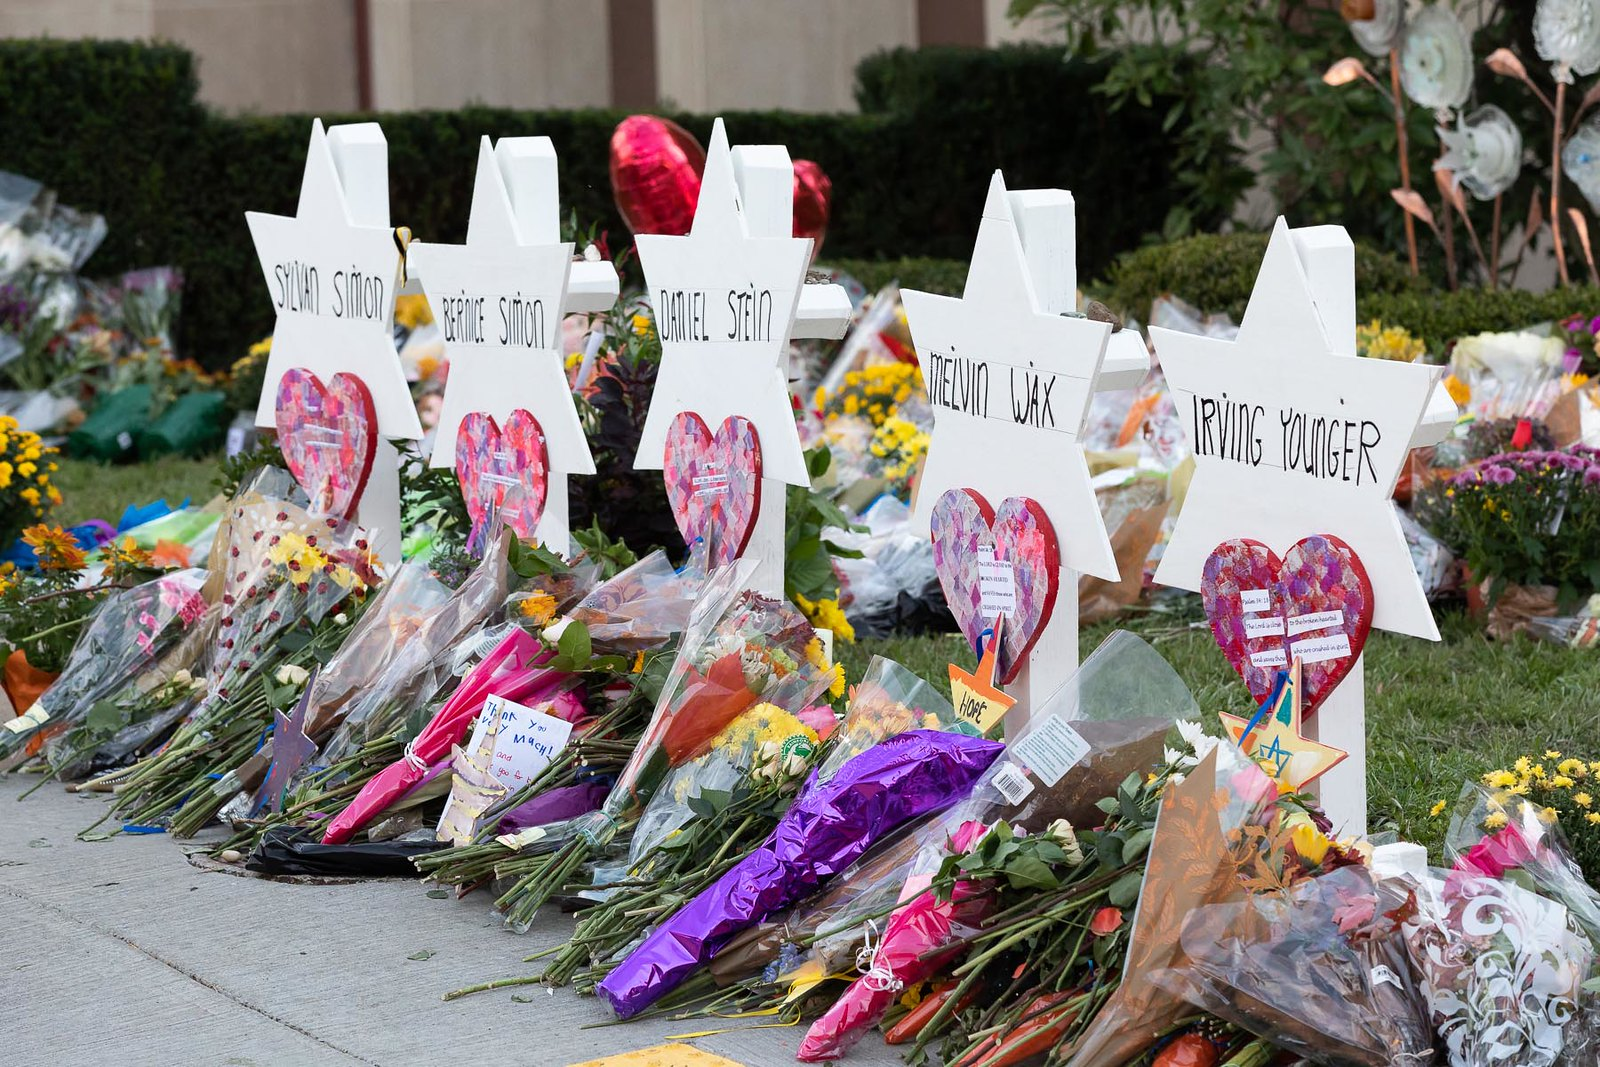 How journalists cover mass shootings: Research to consider